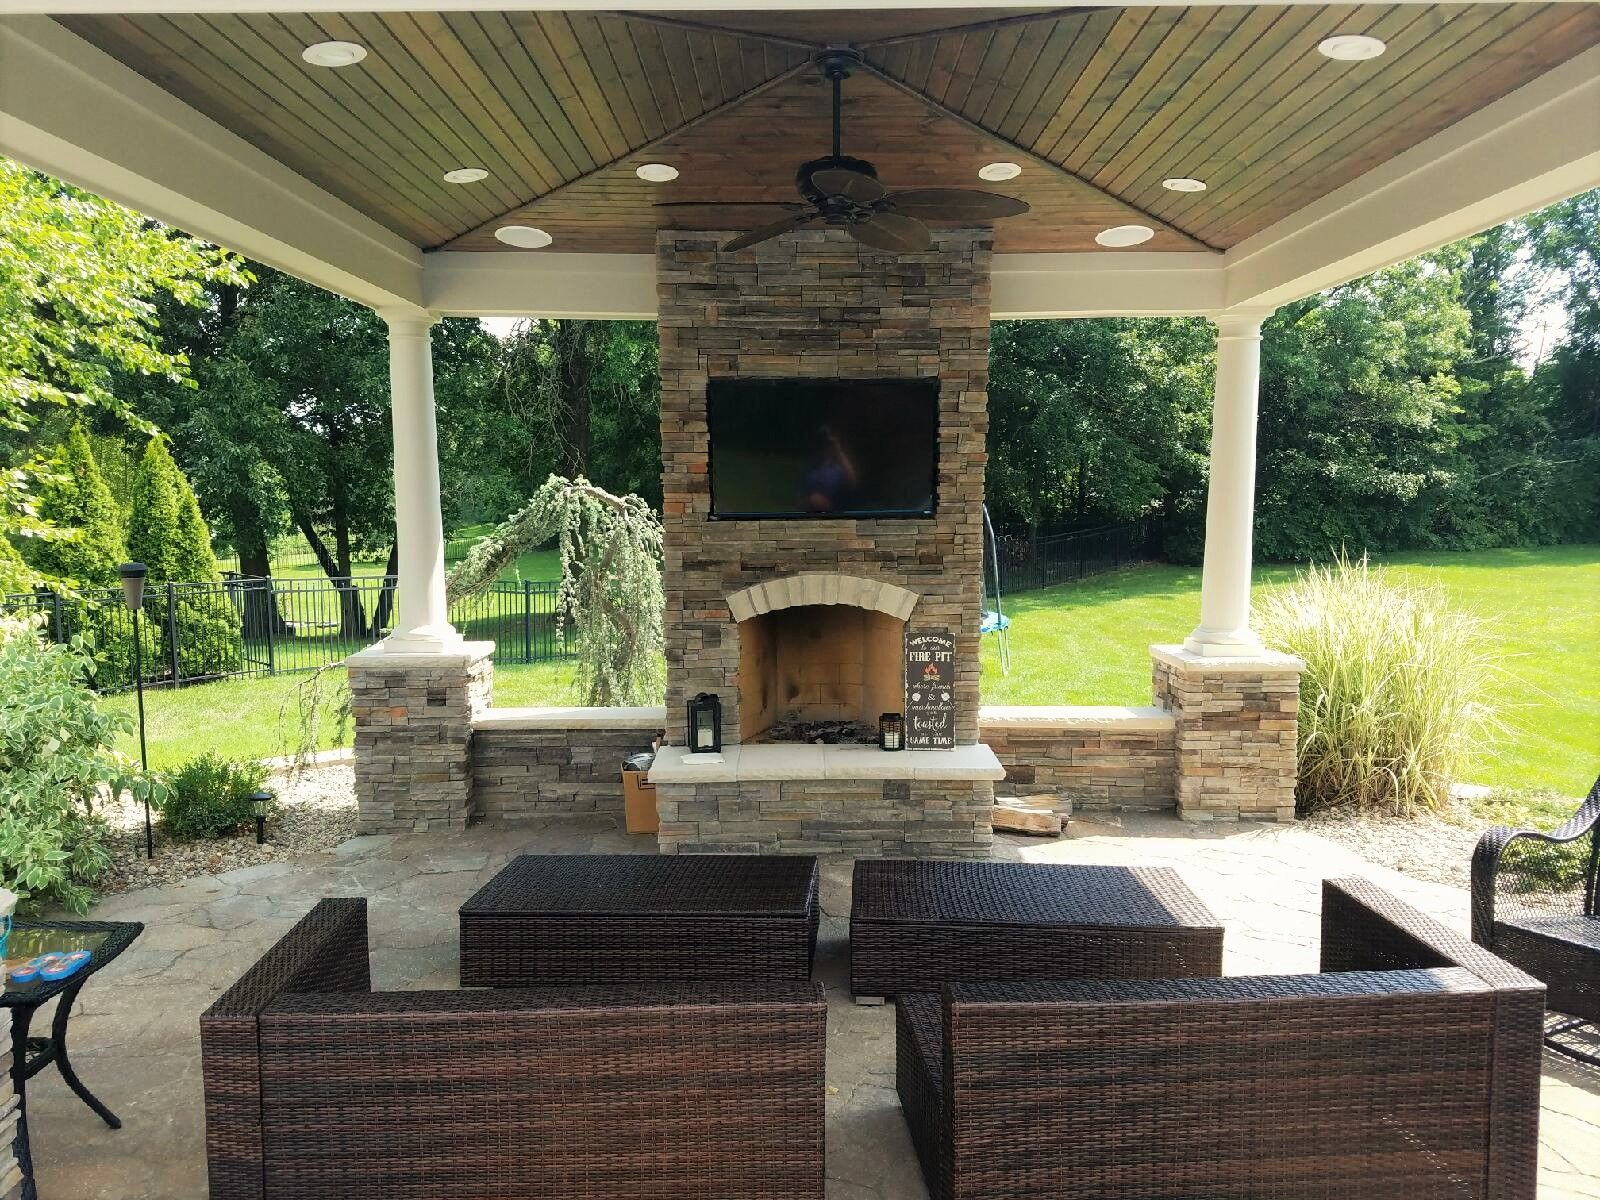 Pavilion With Fireplace And Inset For Flat Screen Tv